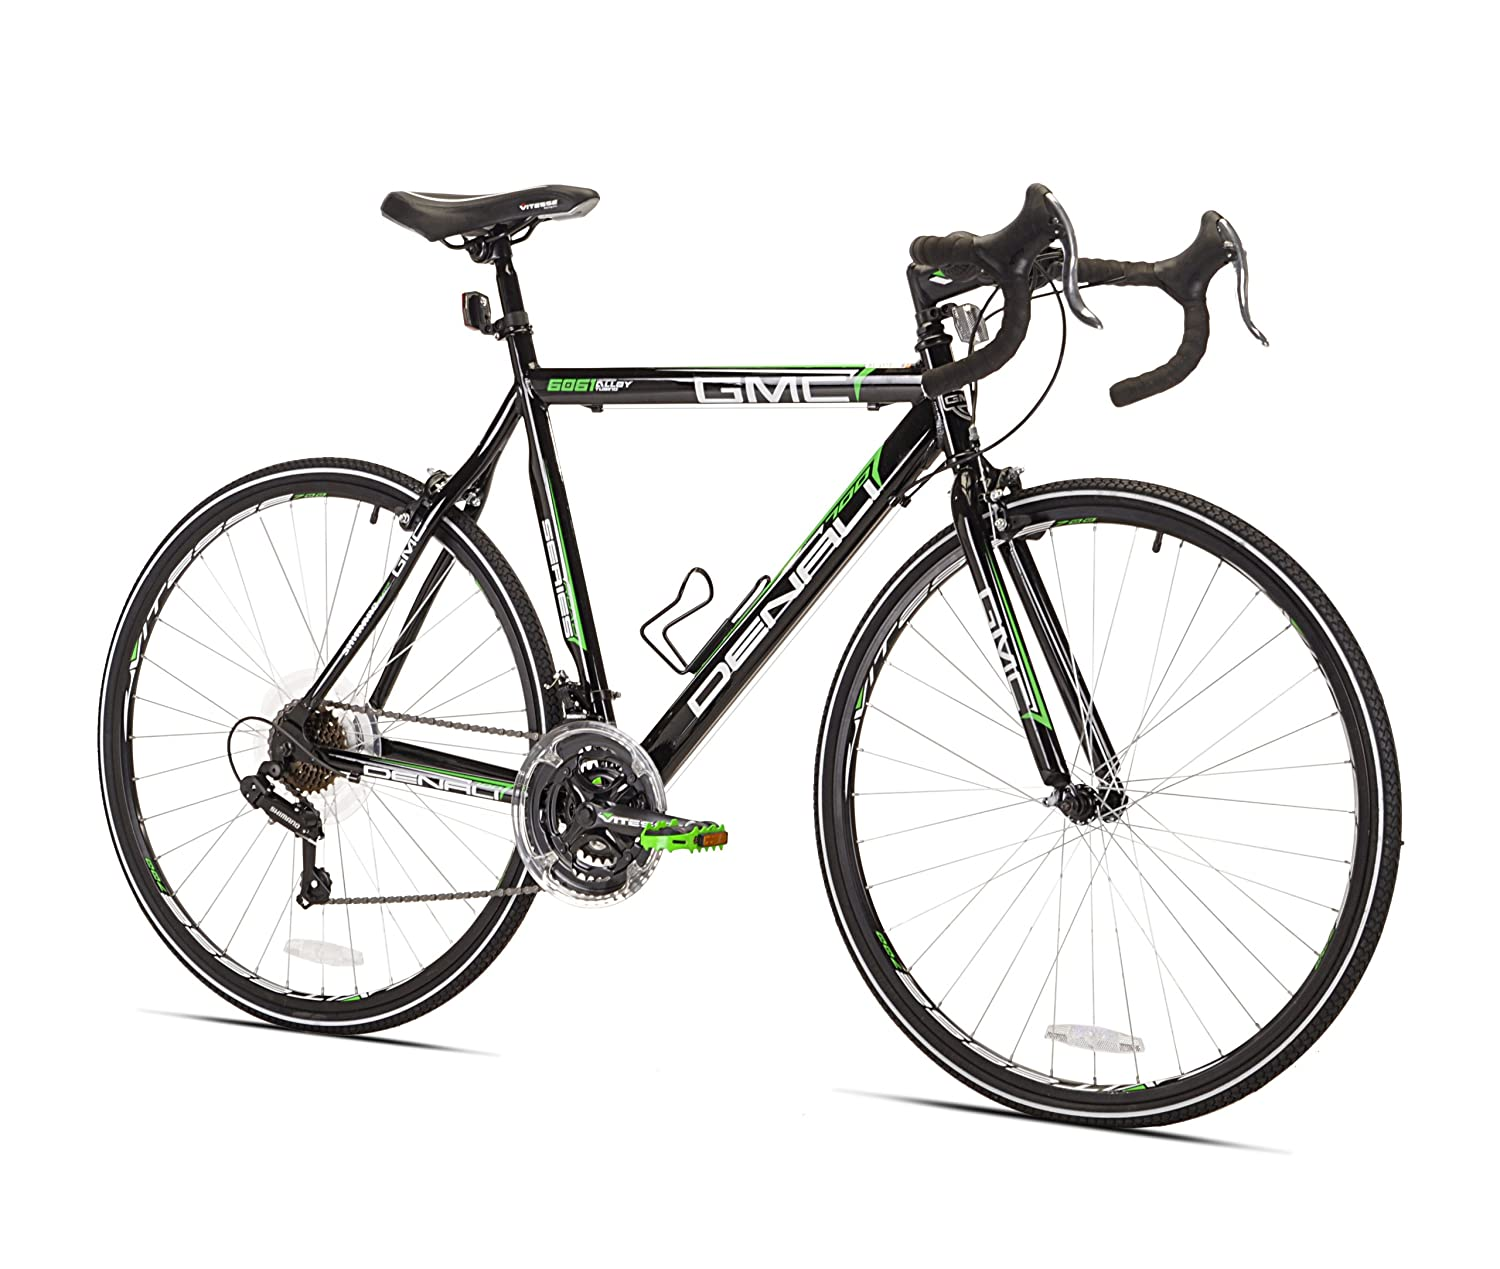 Bikes On Sales GMC Denali Road Bike